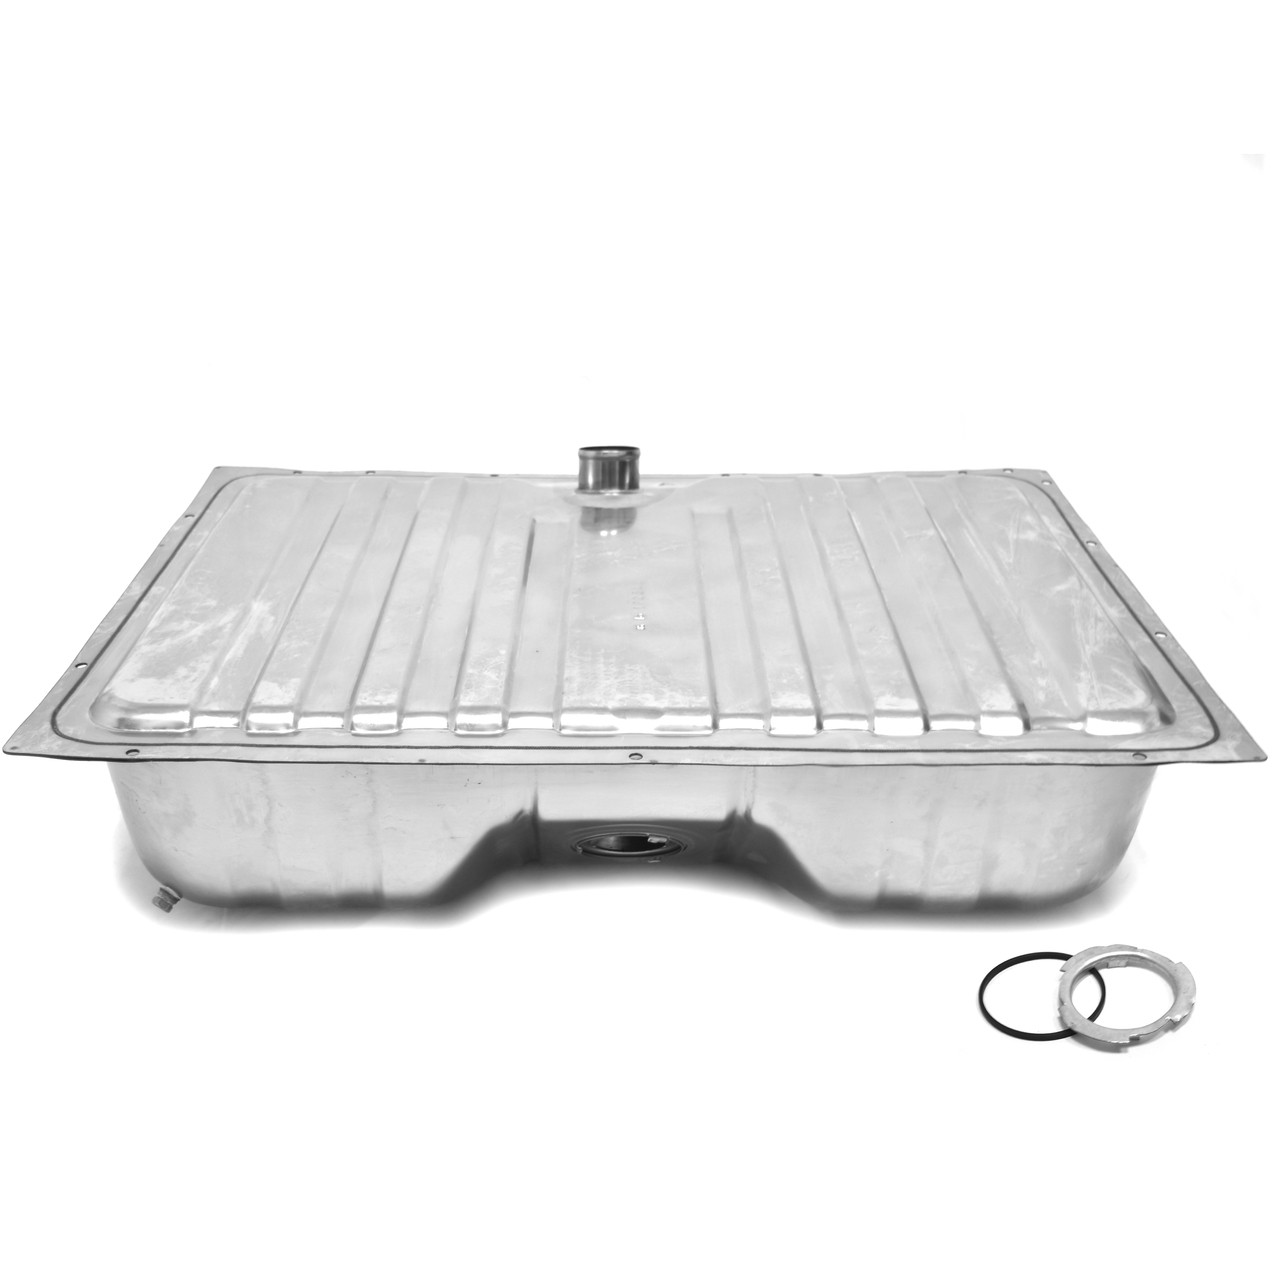 Stainless Steel Fuel Tank With Drain 16 Gallon [FM-EG003SS]